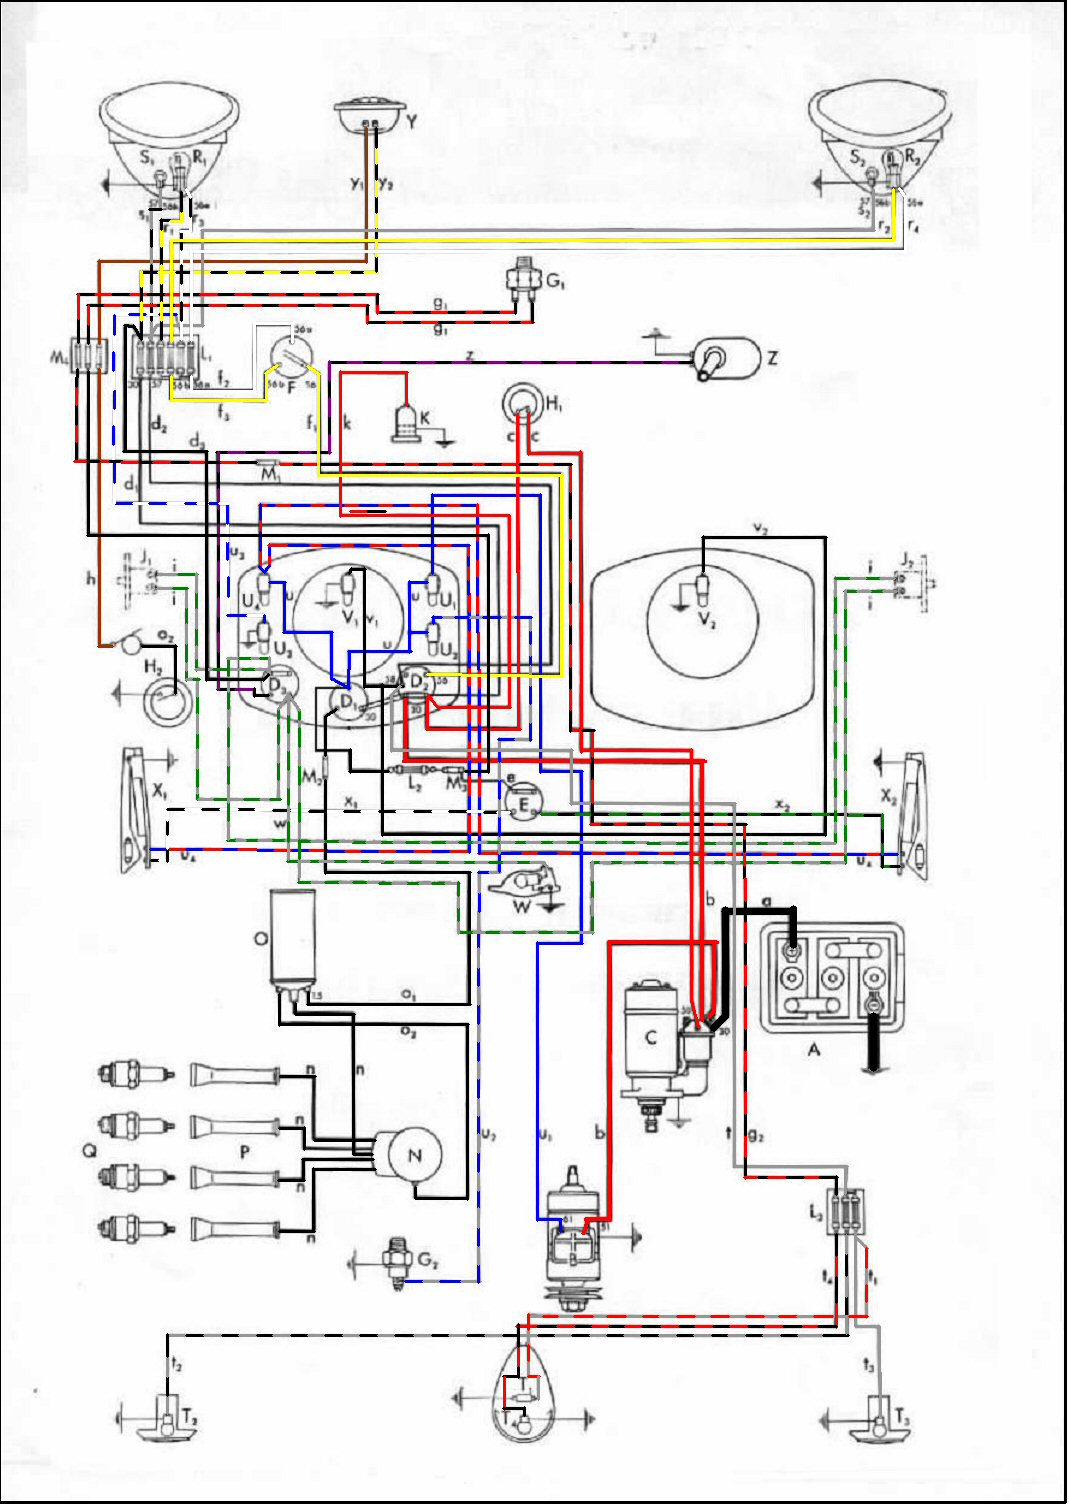 Type 1 Wiring Diagrams 1971 Vw Beetle Turn Signal Diagram